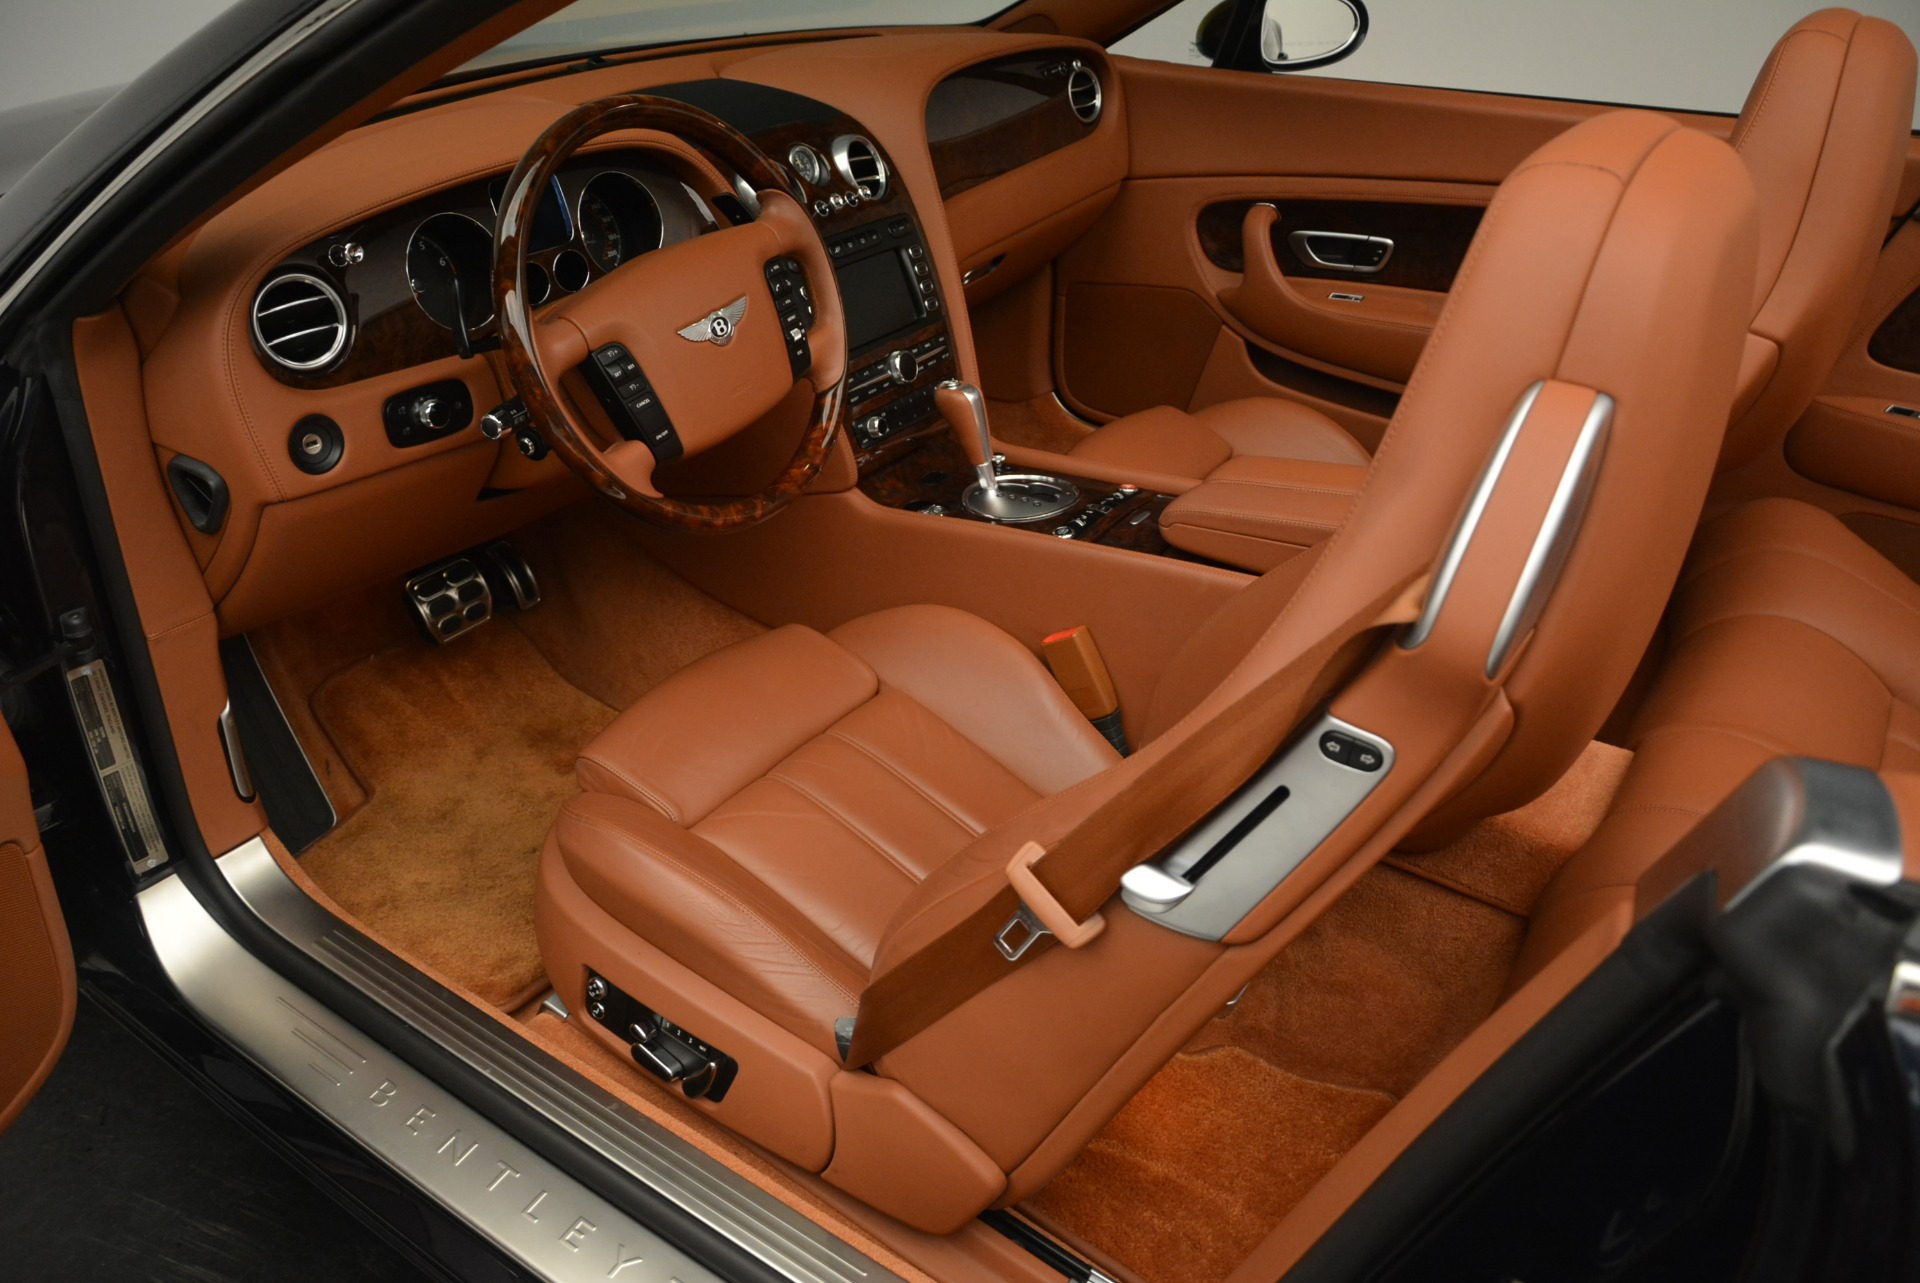 Used 2008 Bentley Continental GTC GT For Sale In Westport, CT 2307_p25